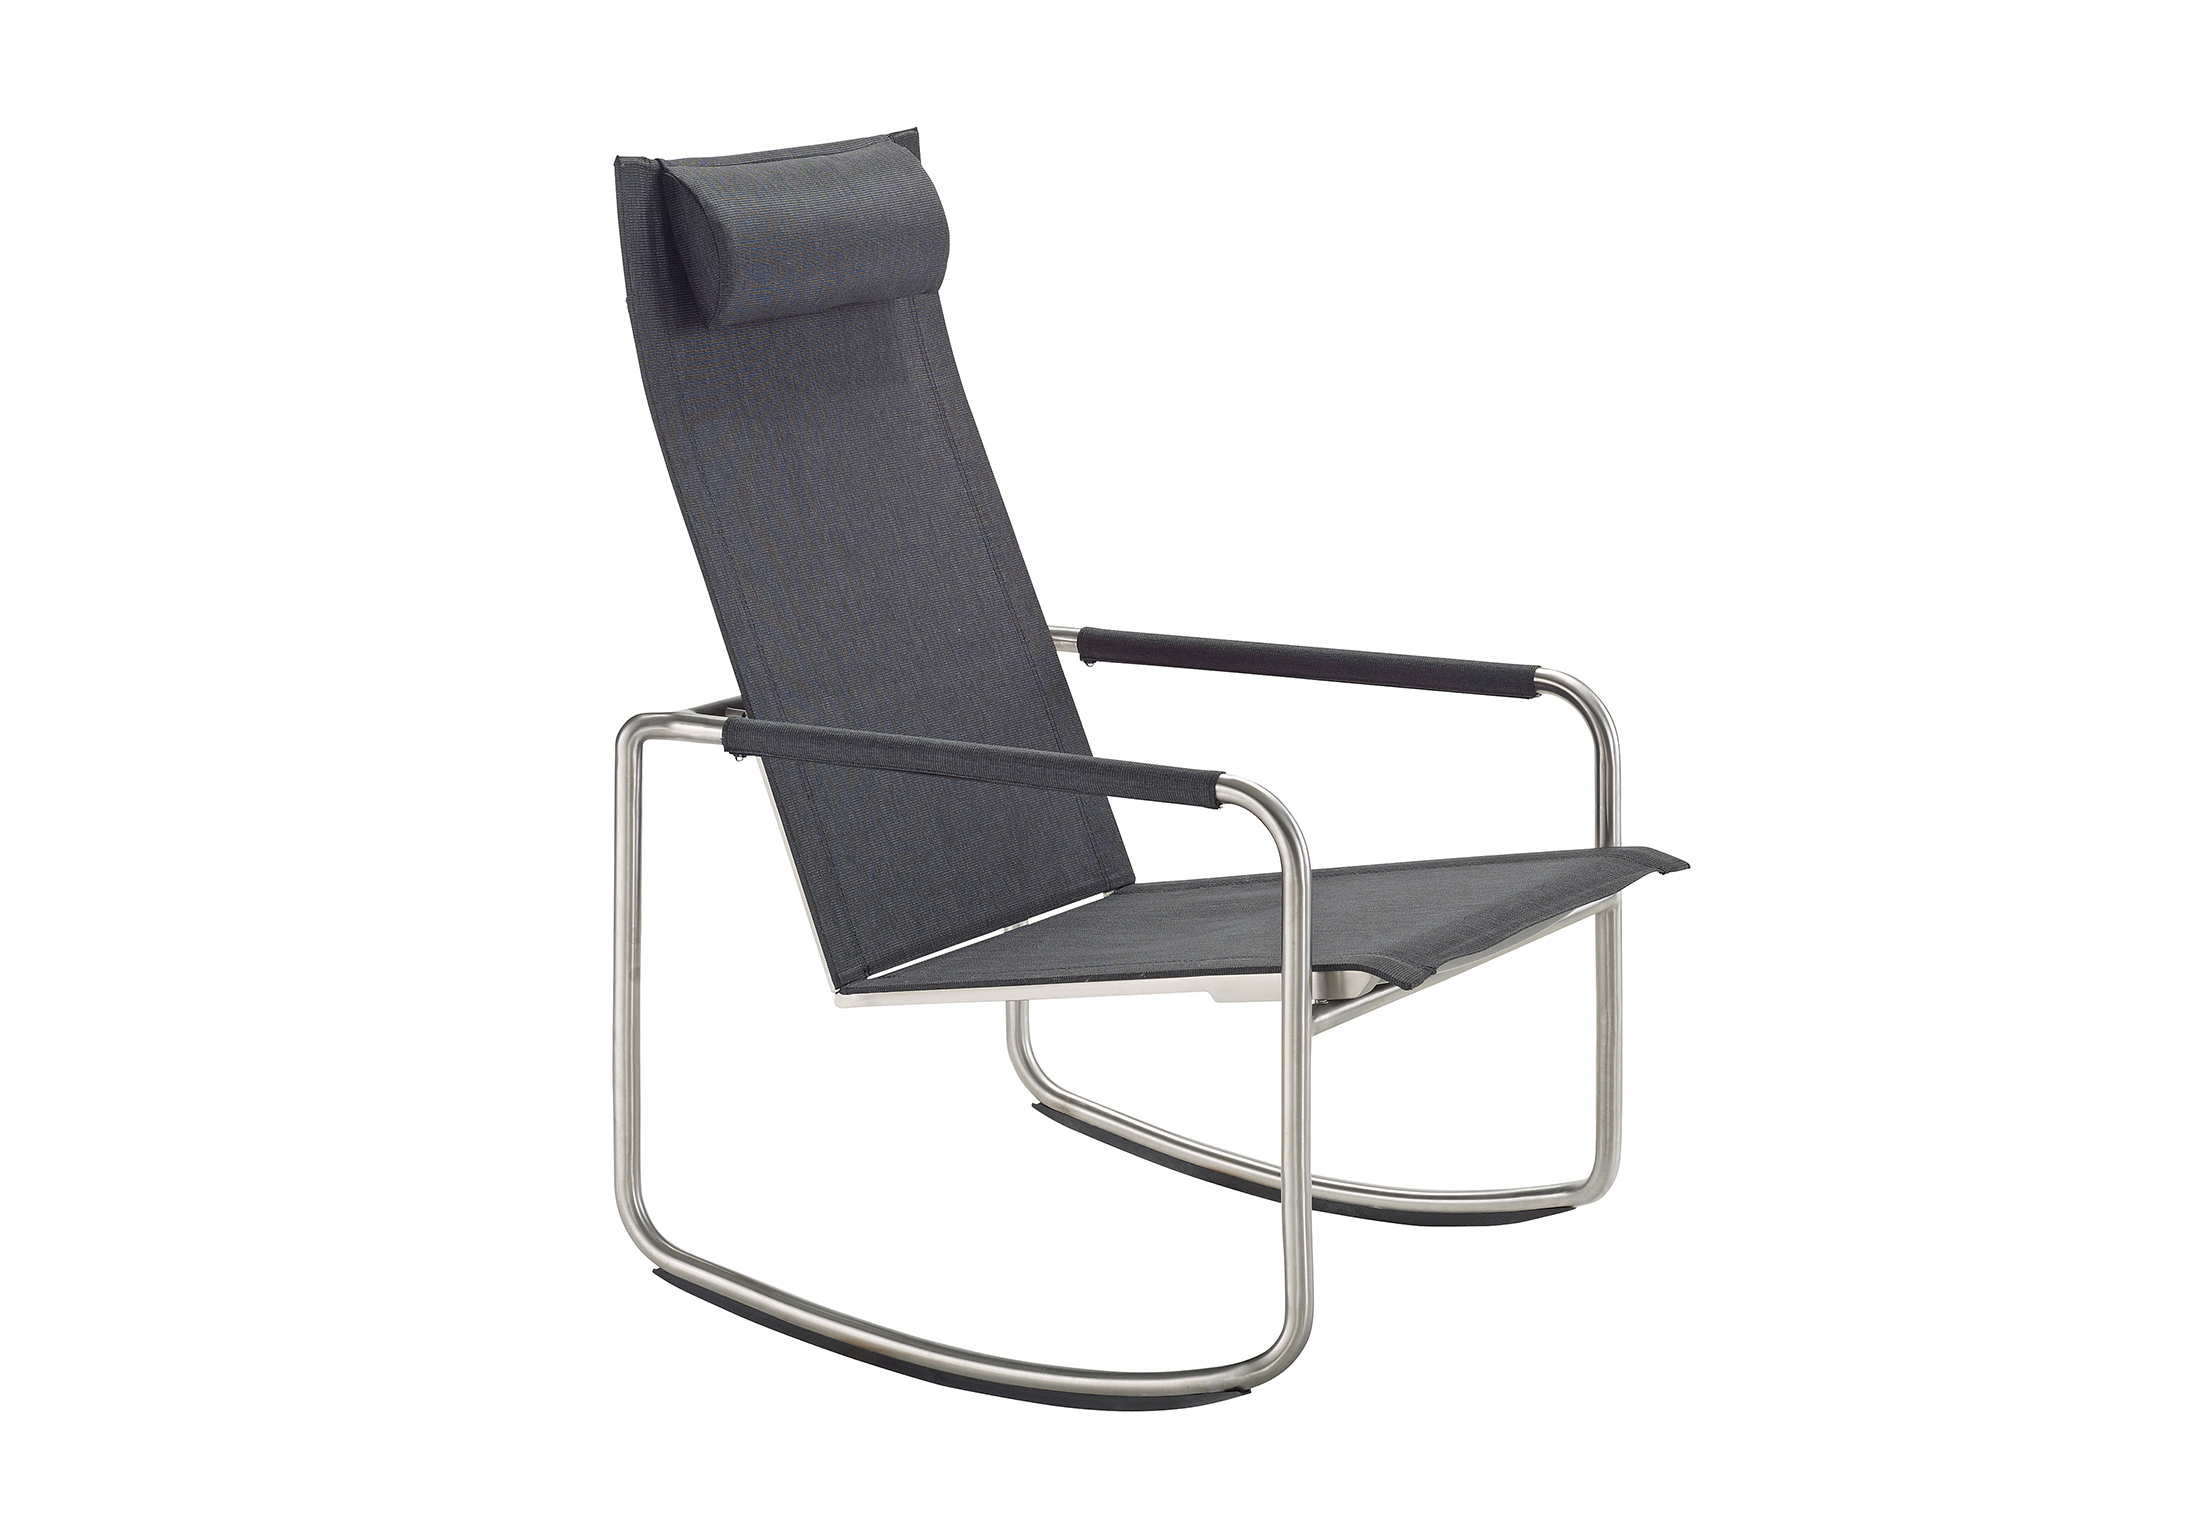 Jardin Rocking Deck Chair By Solpuri | Stylepark destiné Rocking Chair De Jardin